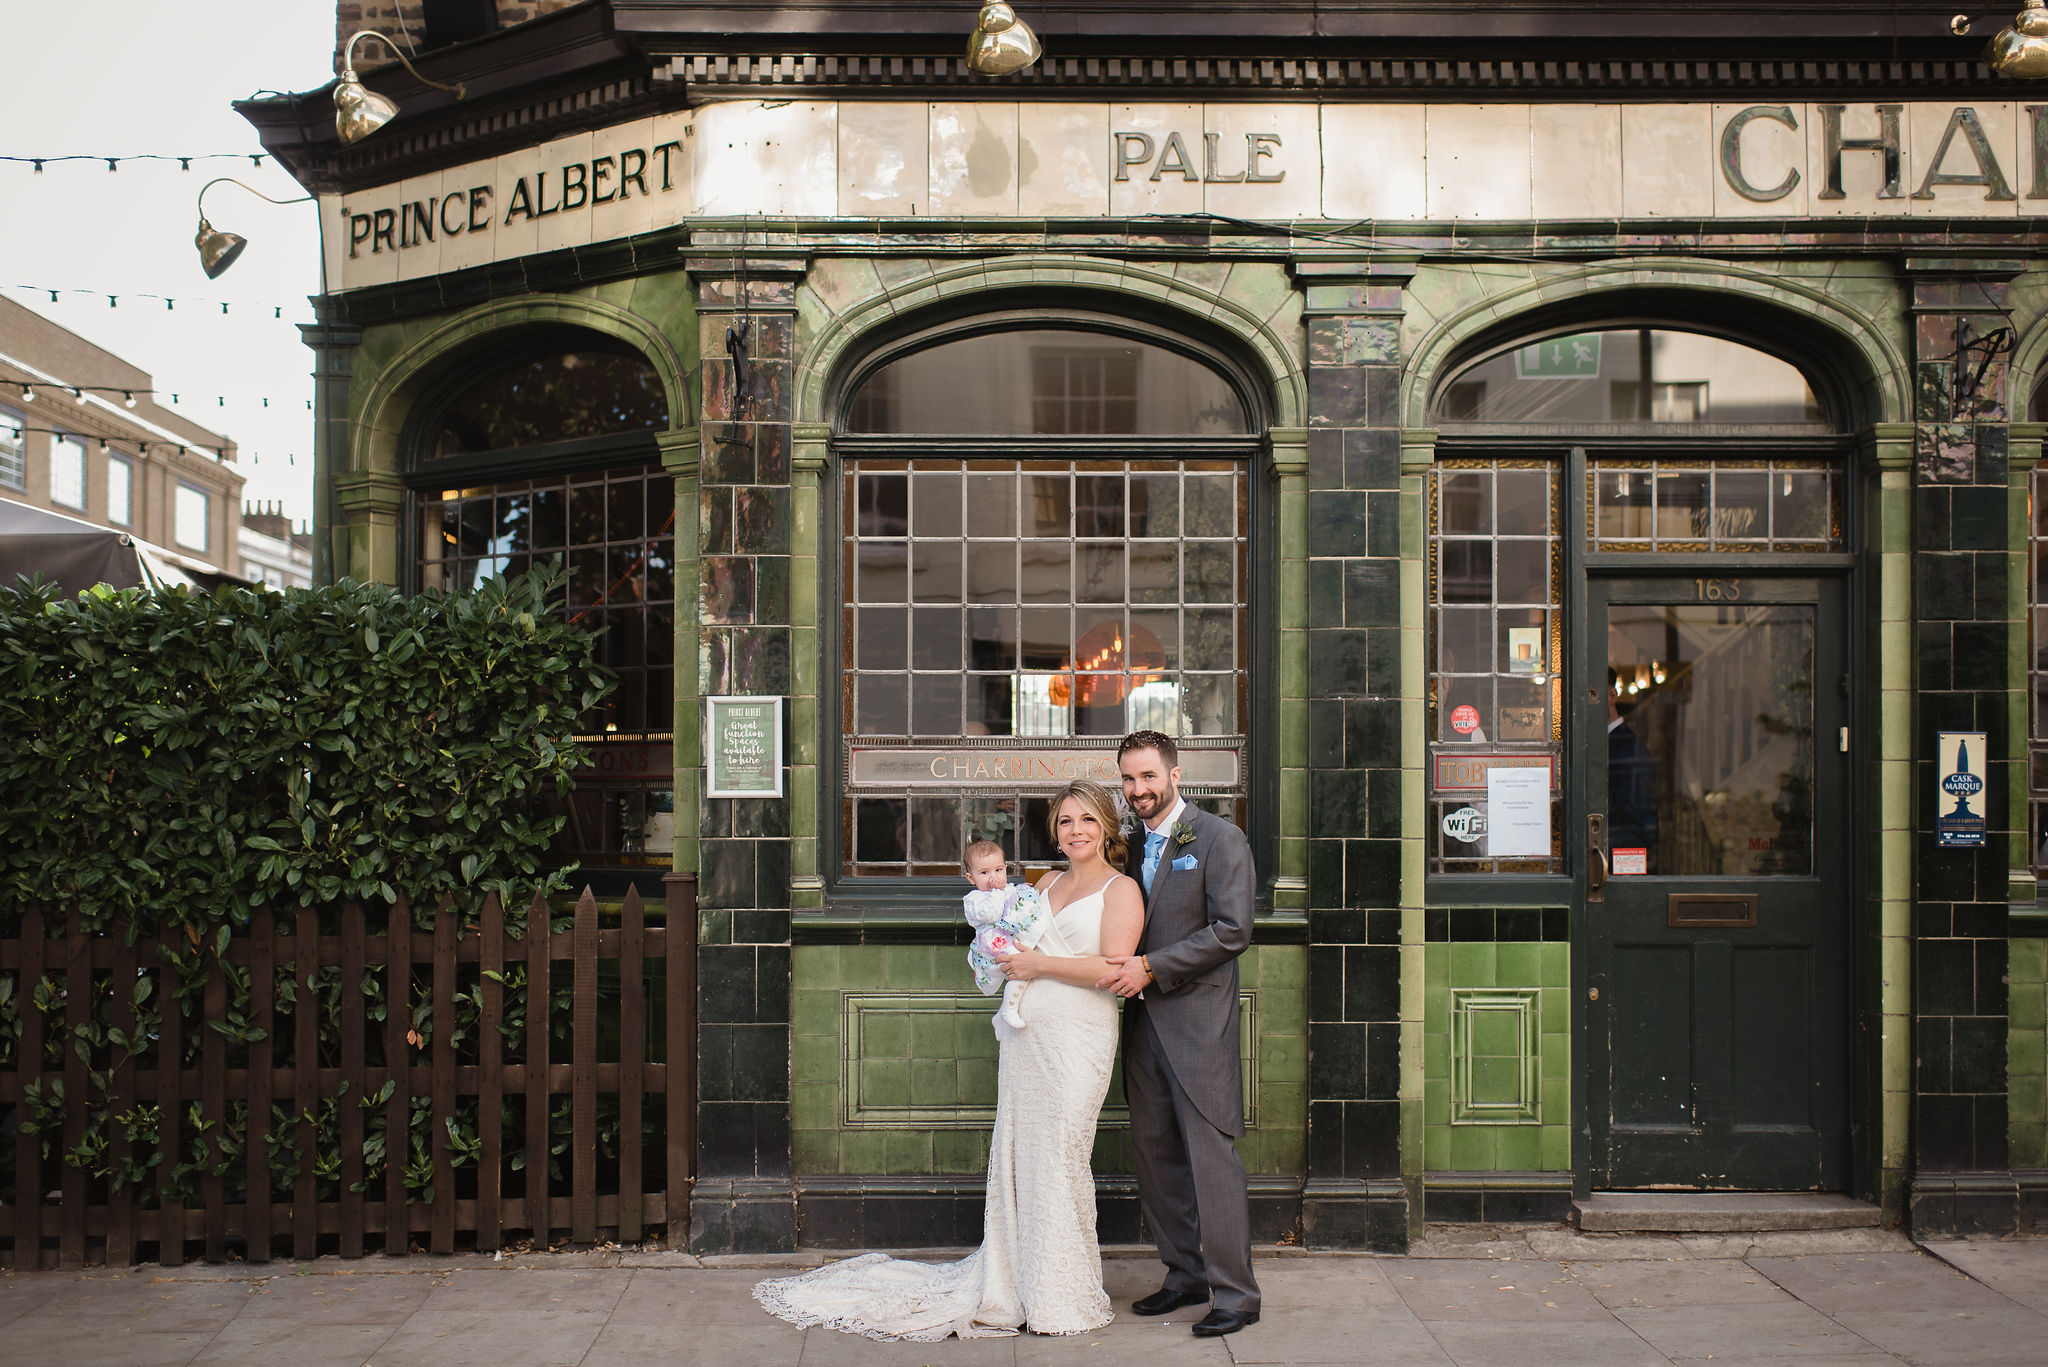 Islington_Town_Hall_Wedding_Prince_Albert_Pub_Camden_68.jpg